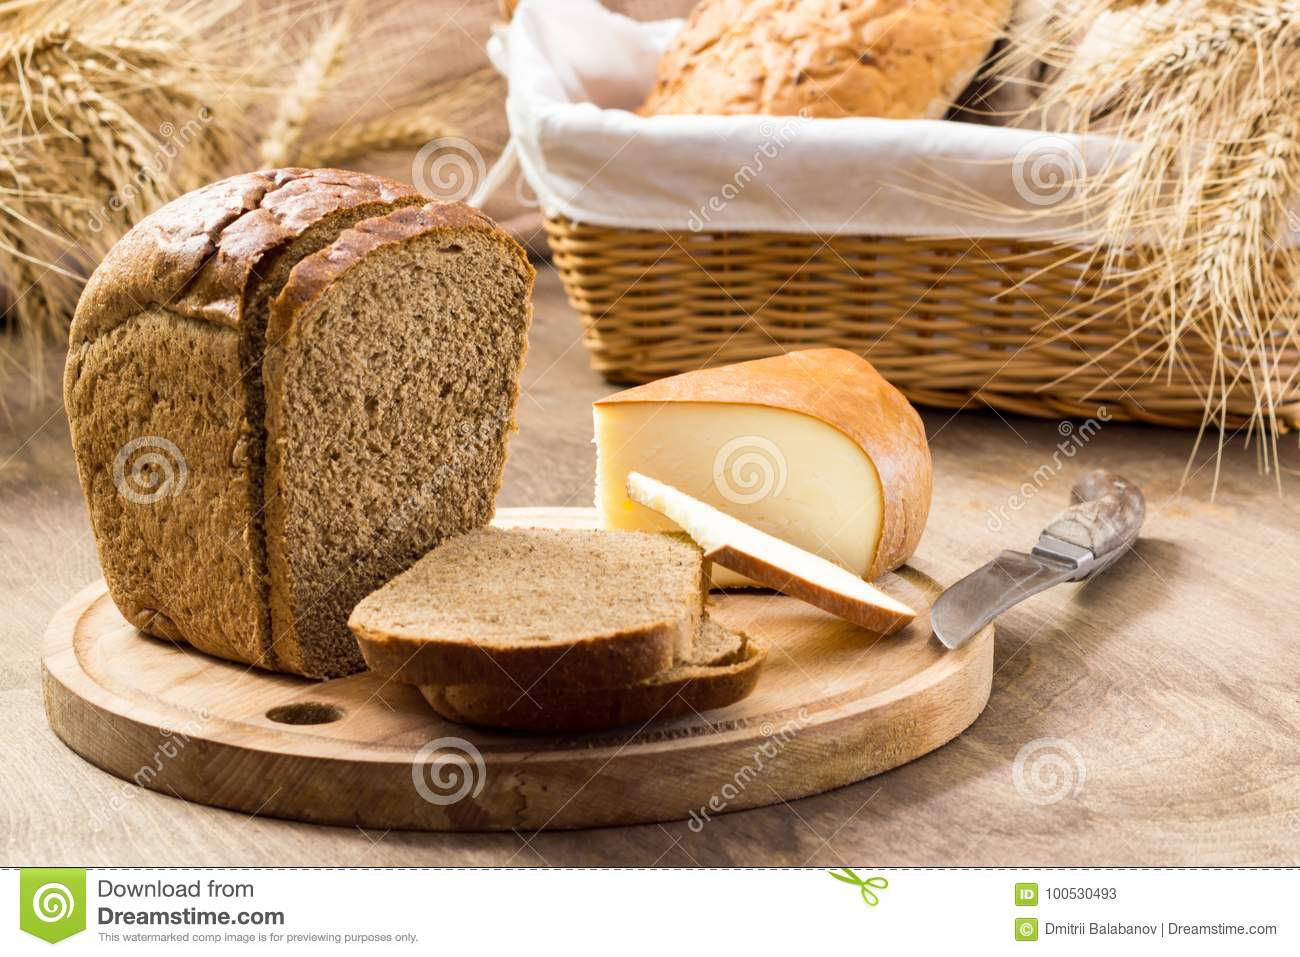 Bread and cheese sliced for sandwiches amid the loaves in a wicker basket with ears of wheat